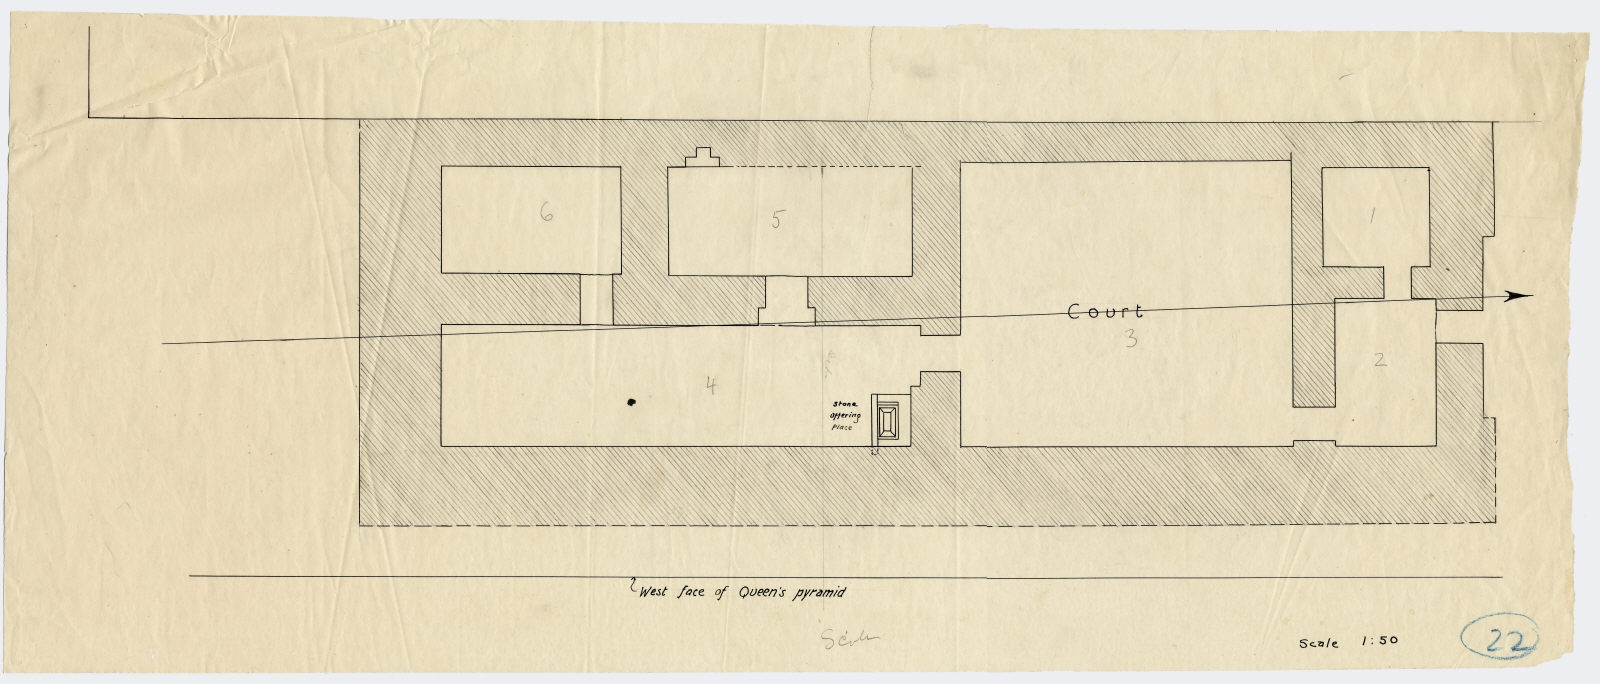 Maps and plans: G III-b Temple, Plan